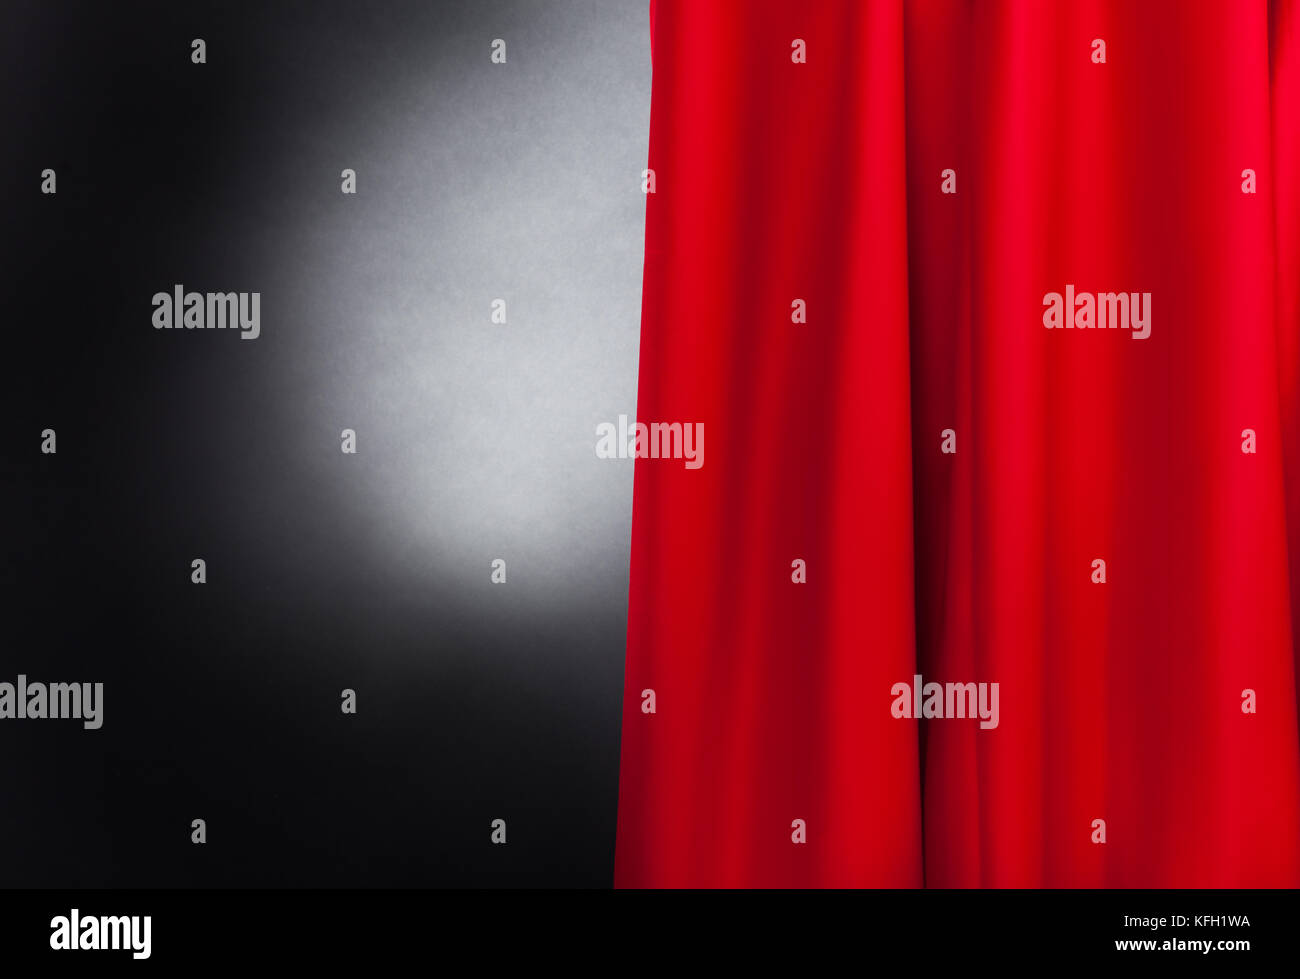 Photo of theater stage with red curtain - Stock Image